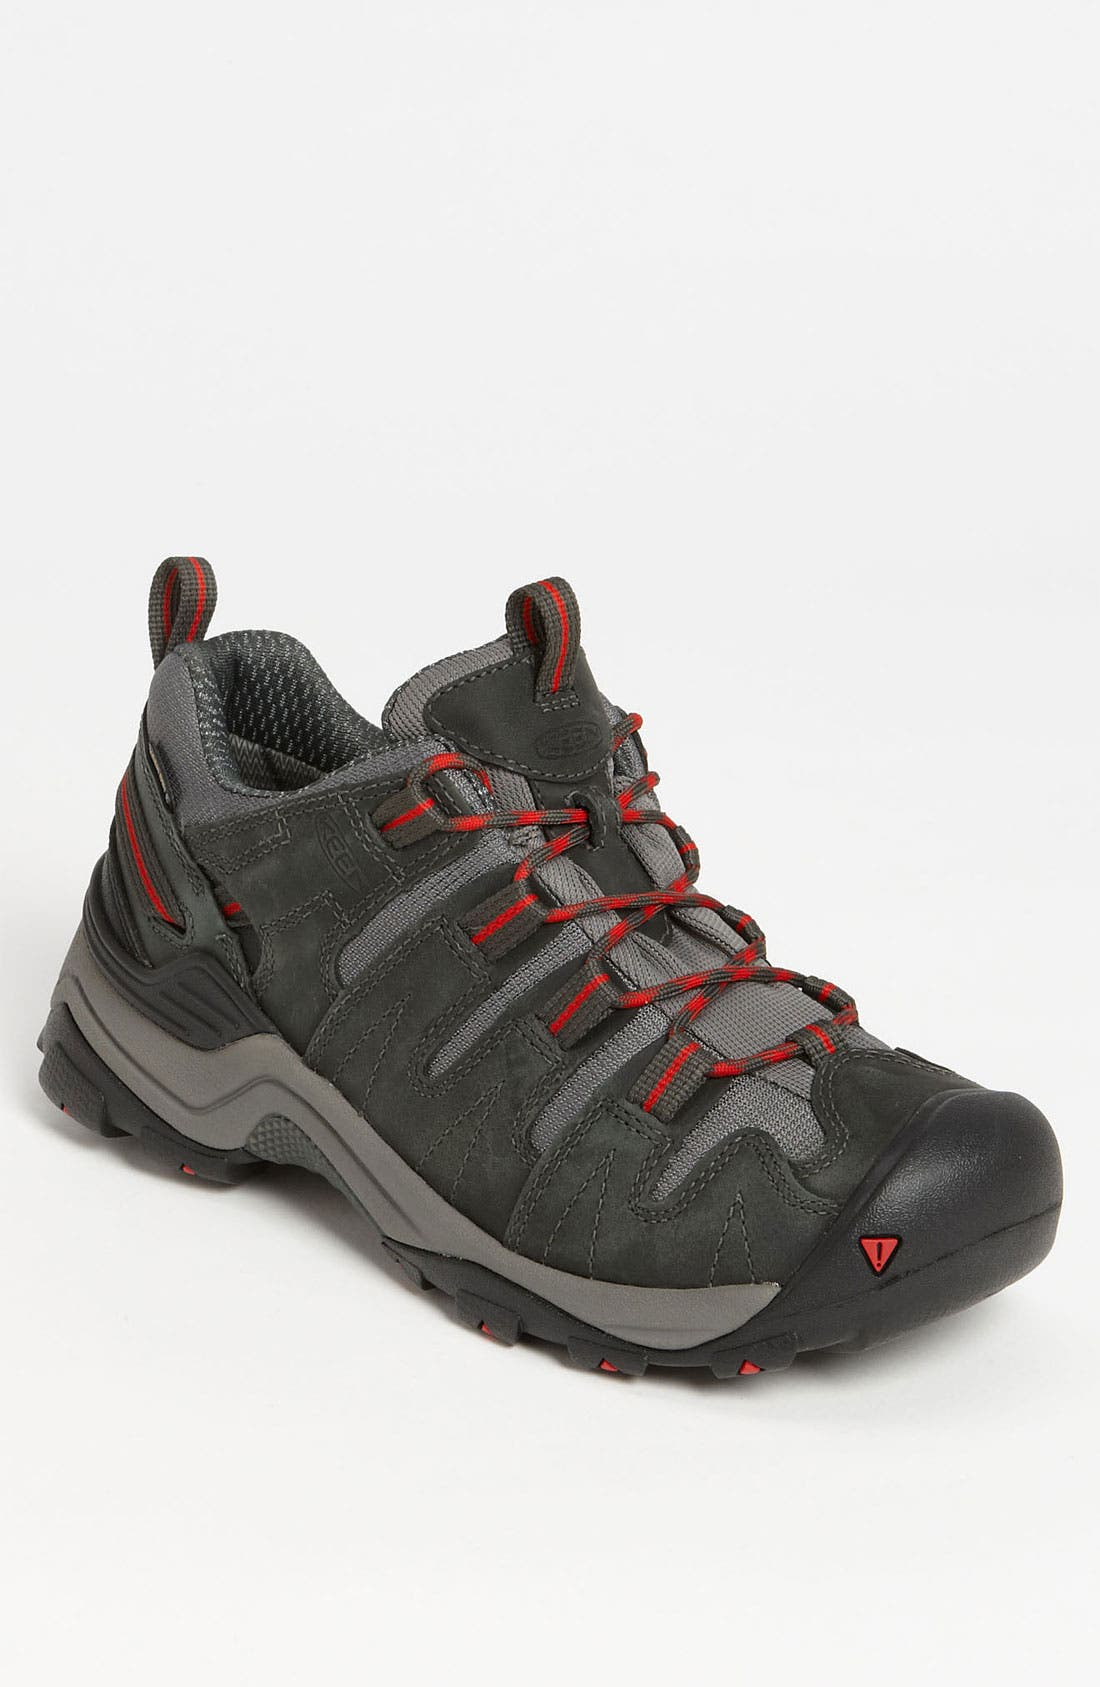 Main Image - Keen 'Gypsum' Hiking Shoe (Men) (Online Only)